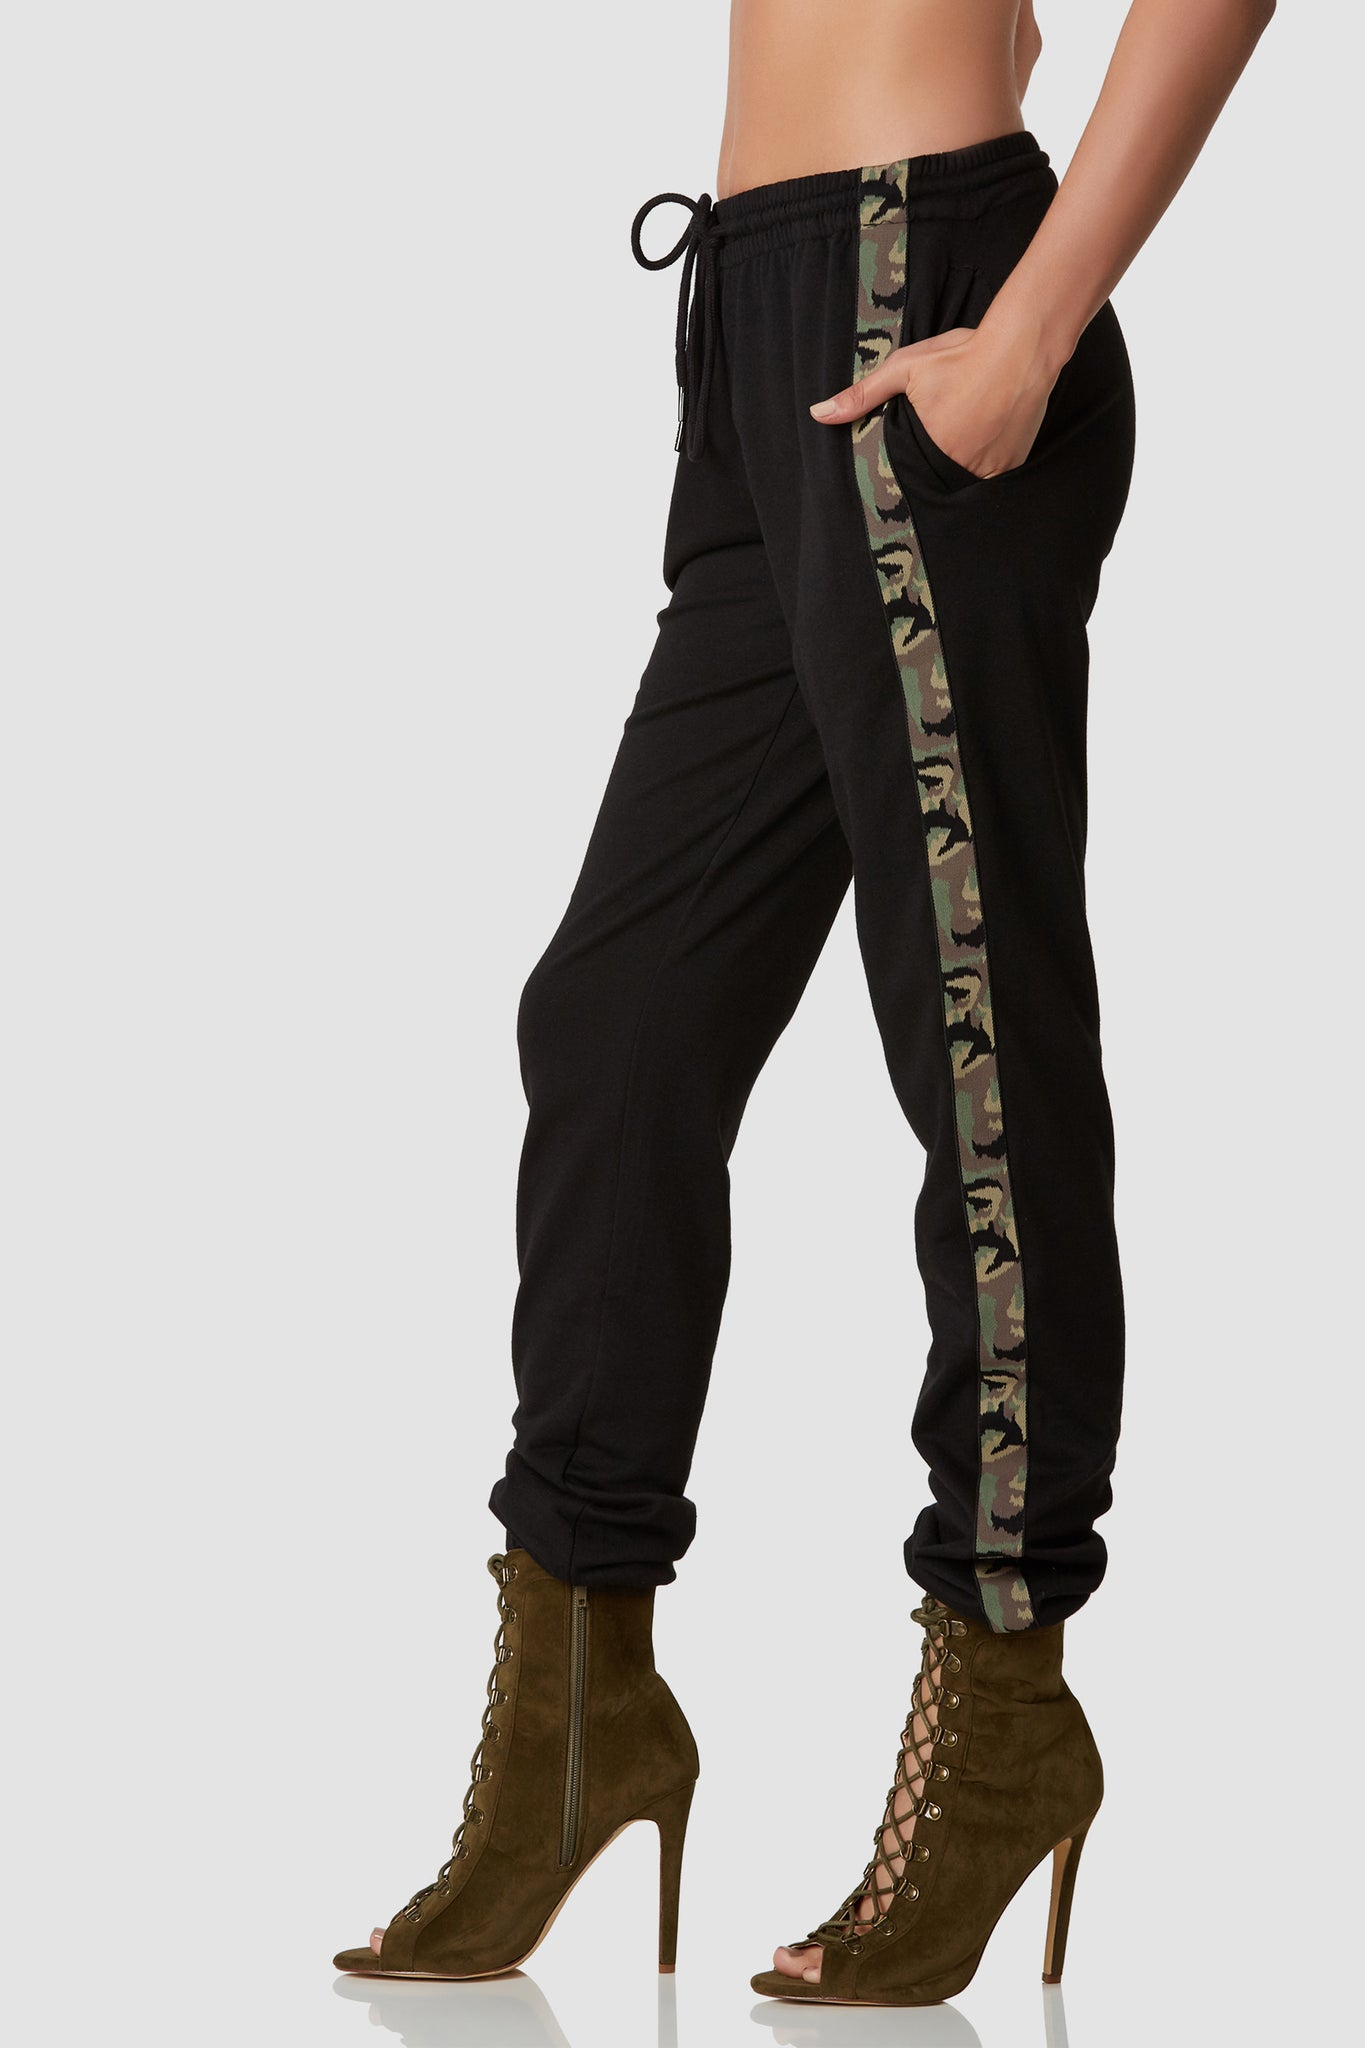 Casual relaxed fit joggers with comfortable drawstring waistband and trendy camo panel on each side. Side pockets with elasticized hem finish.